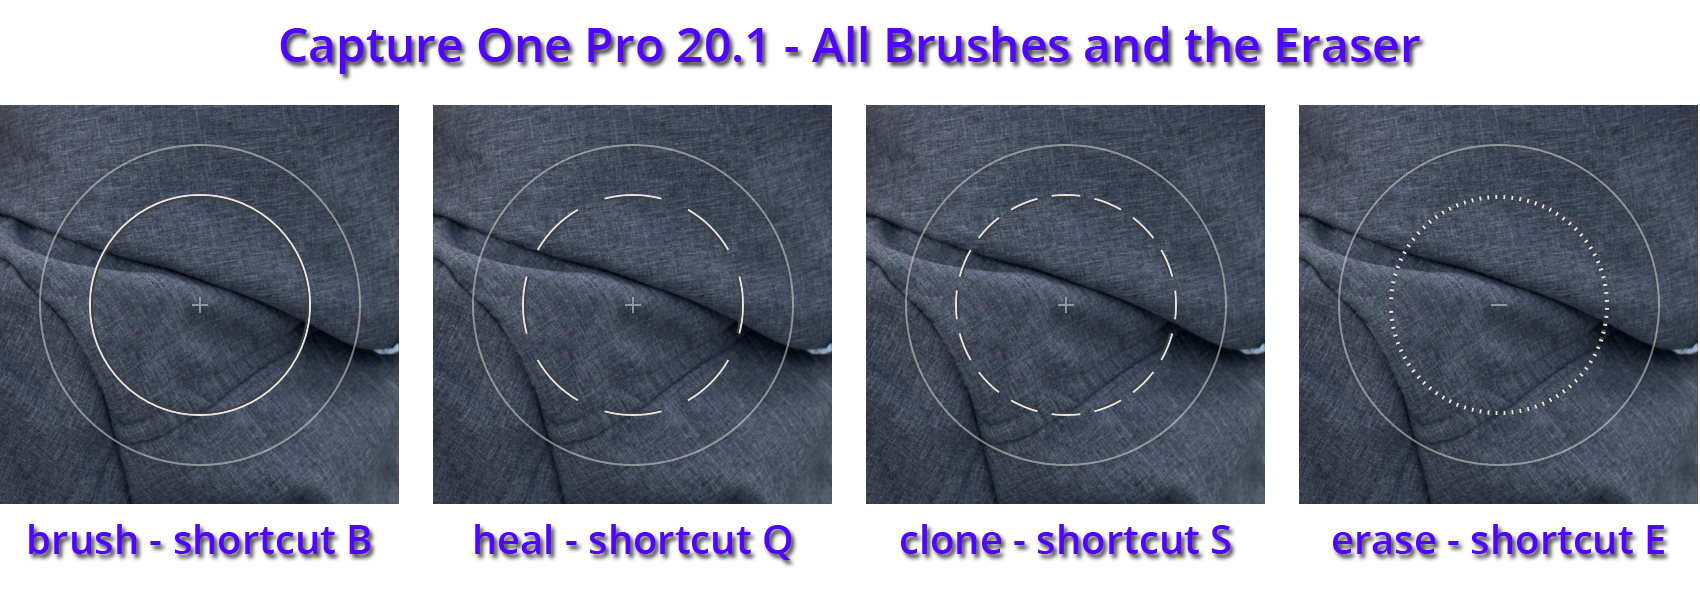 all brushes and eraser, capture one pro 20.1